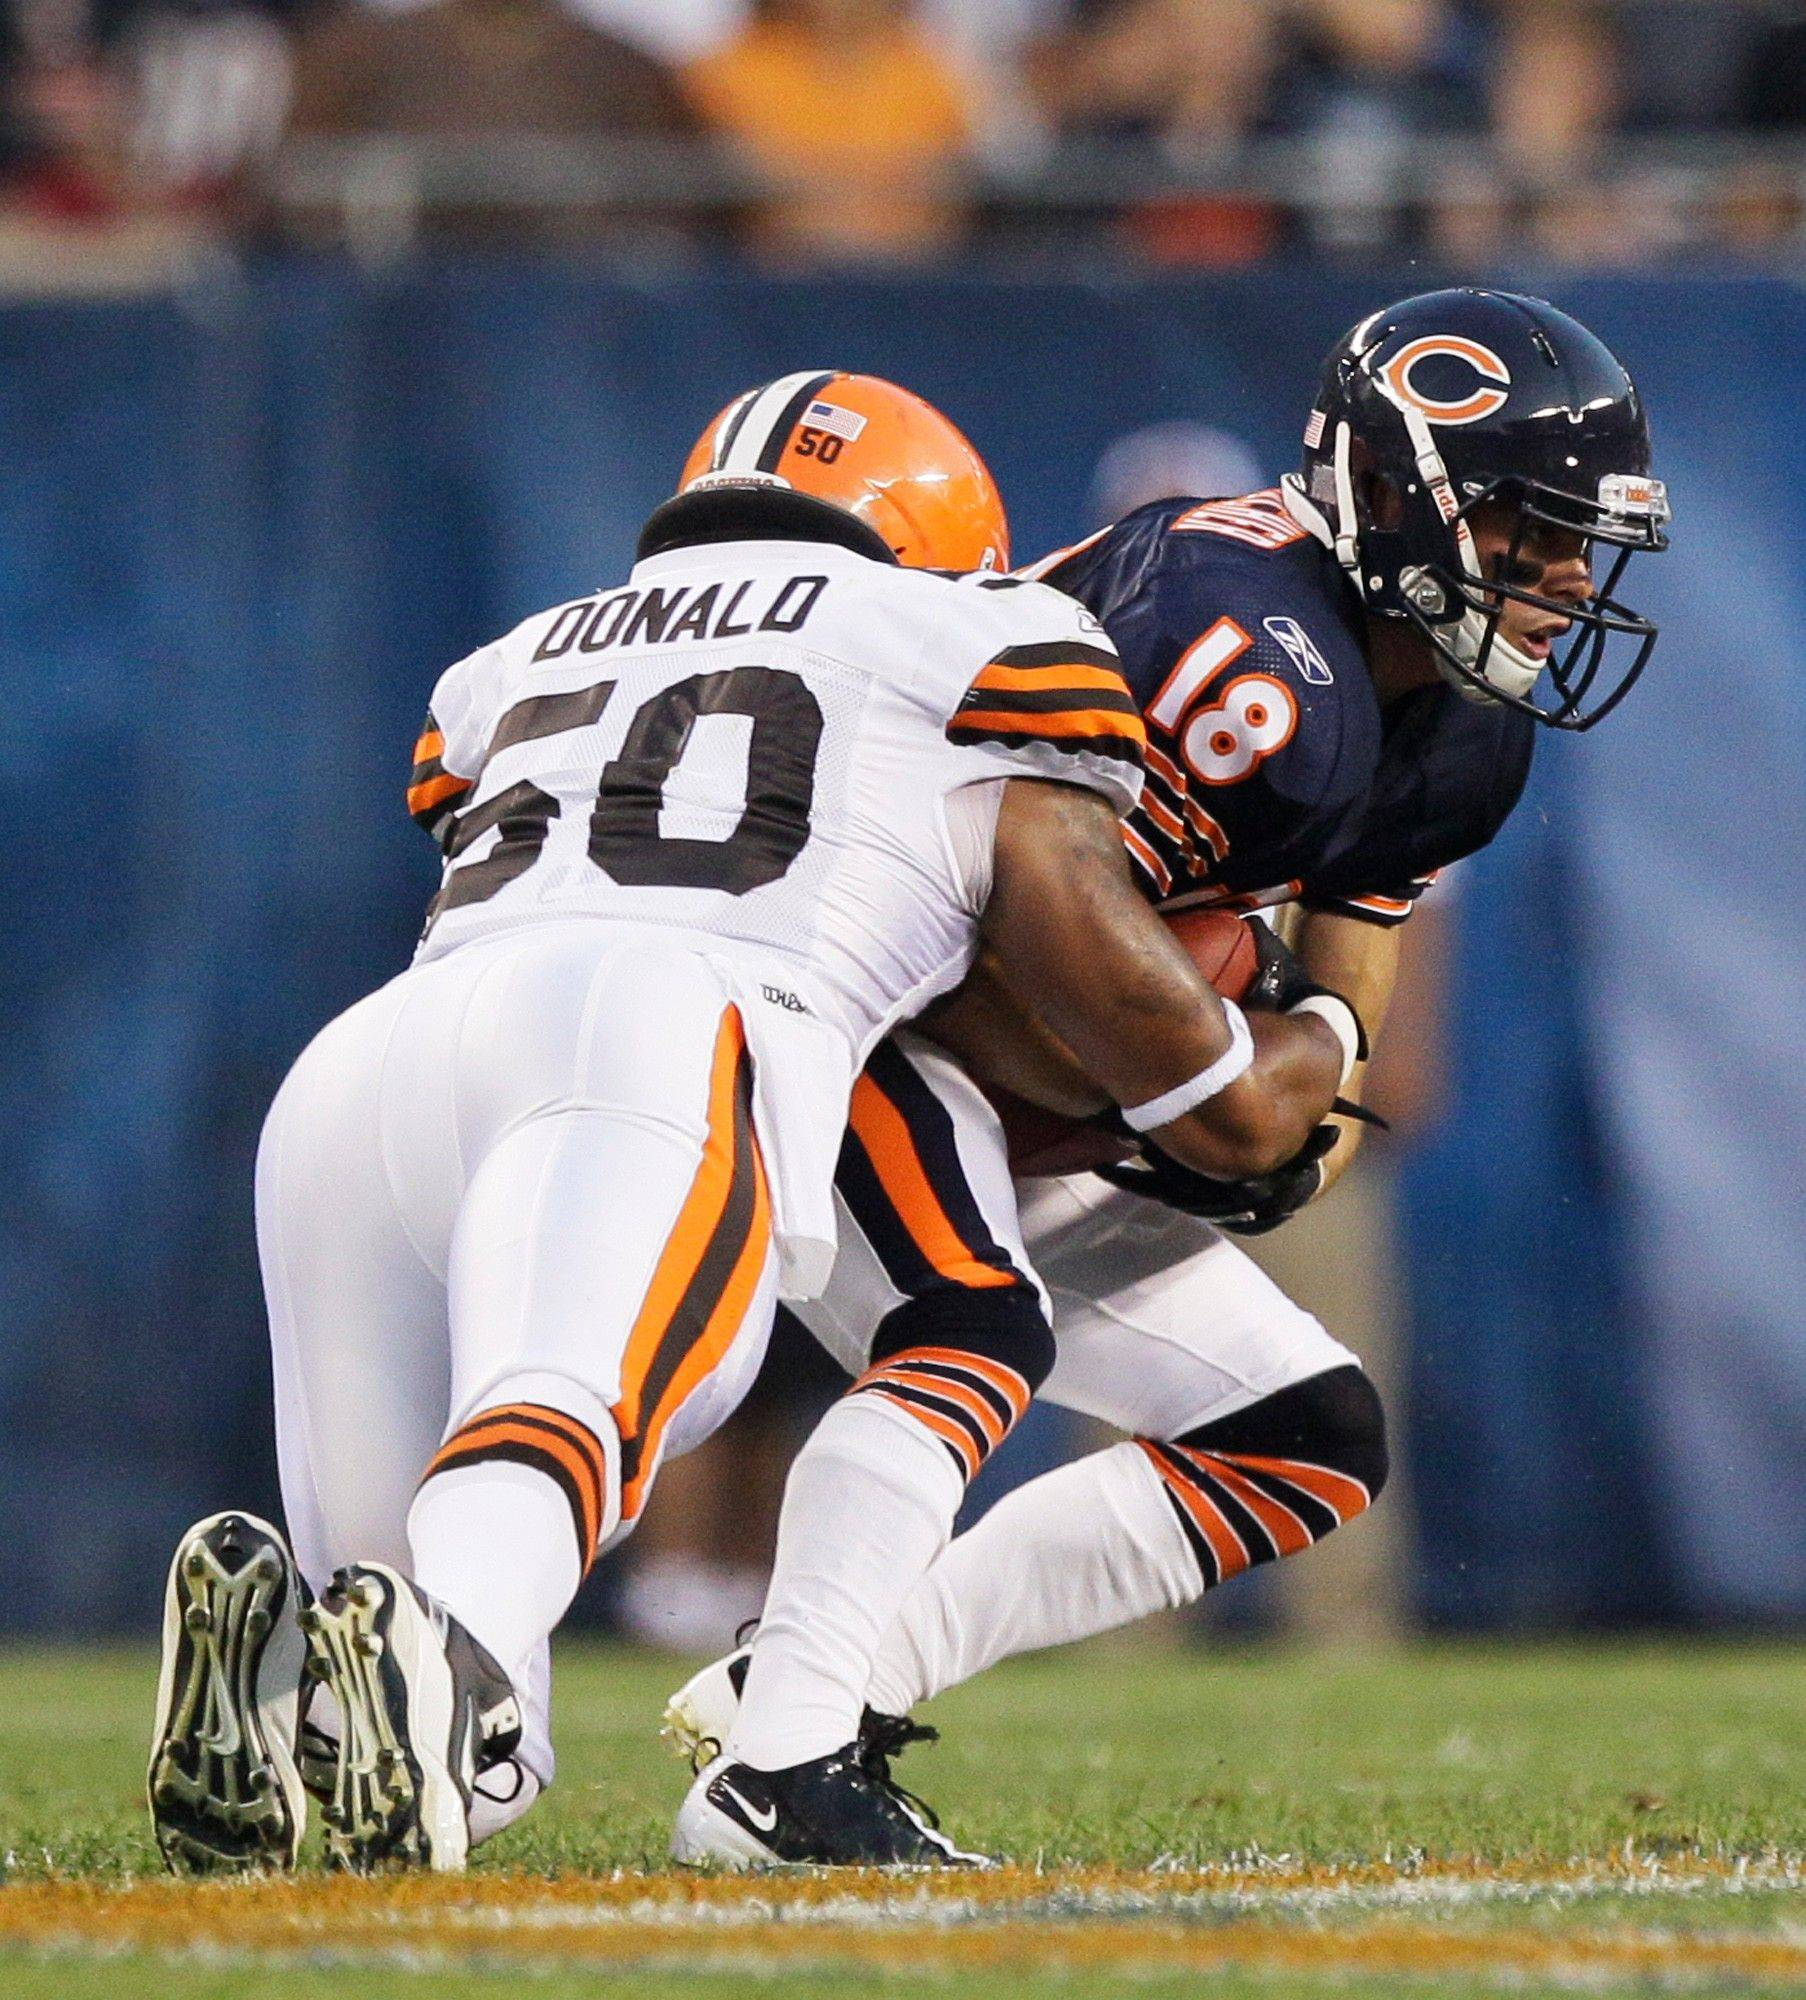 Chicago Bears wide receiver Dane Sanzenbacher is tackled by Cleveland Browns linebacker Archie Donald in the first half.